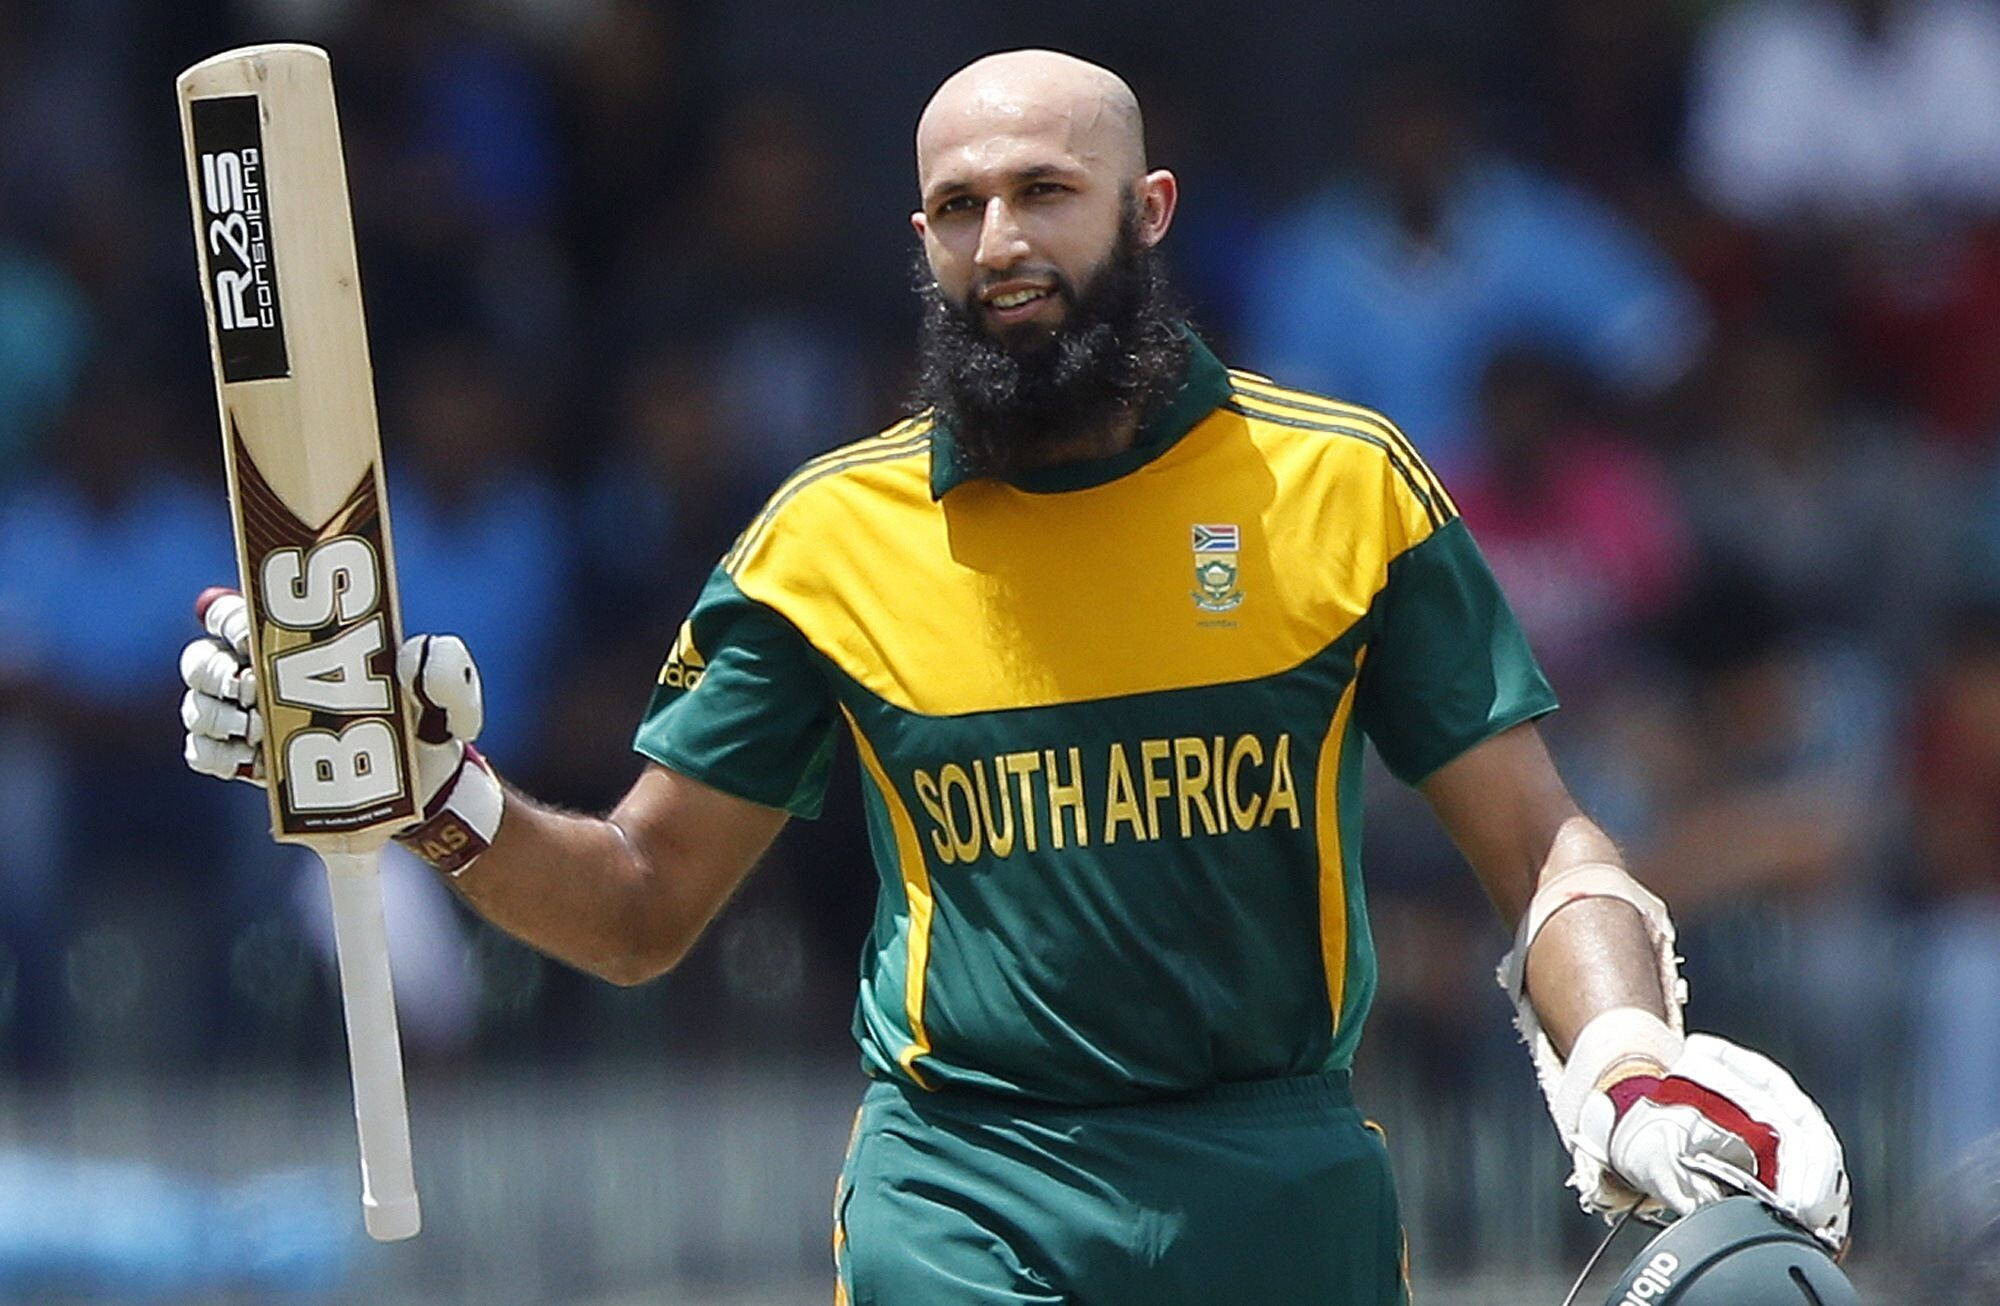 Wallpaper download cricket - 2256 Views 883 Download Hashim Amla South African Cricketer In T20 World Cup Wallpaper